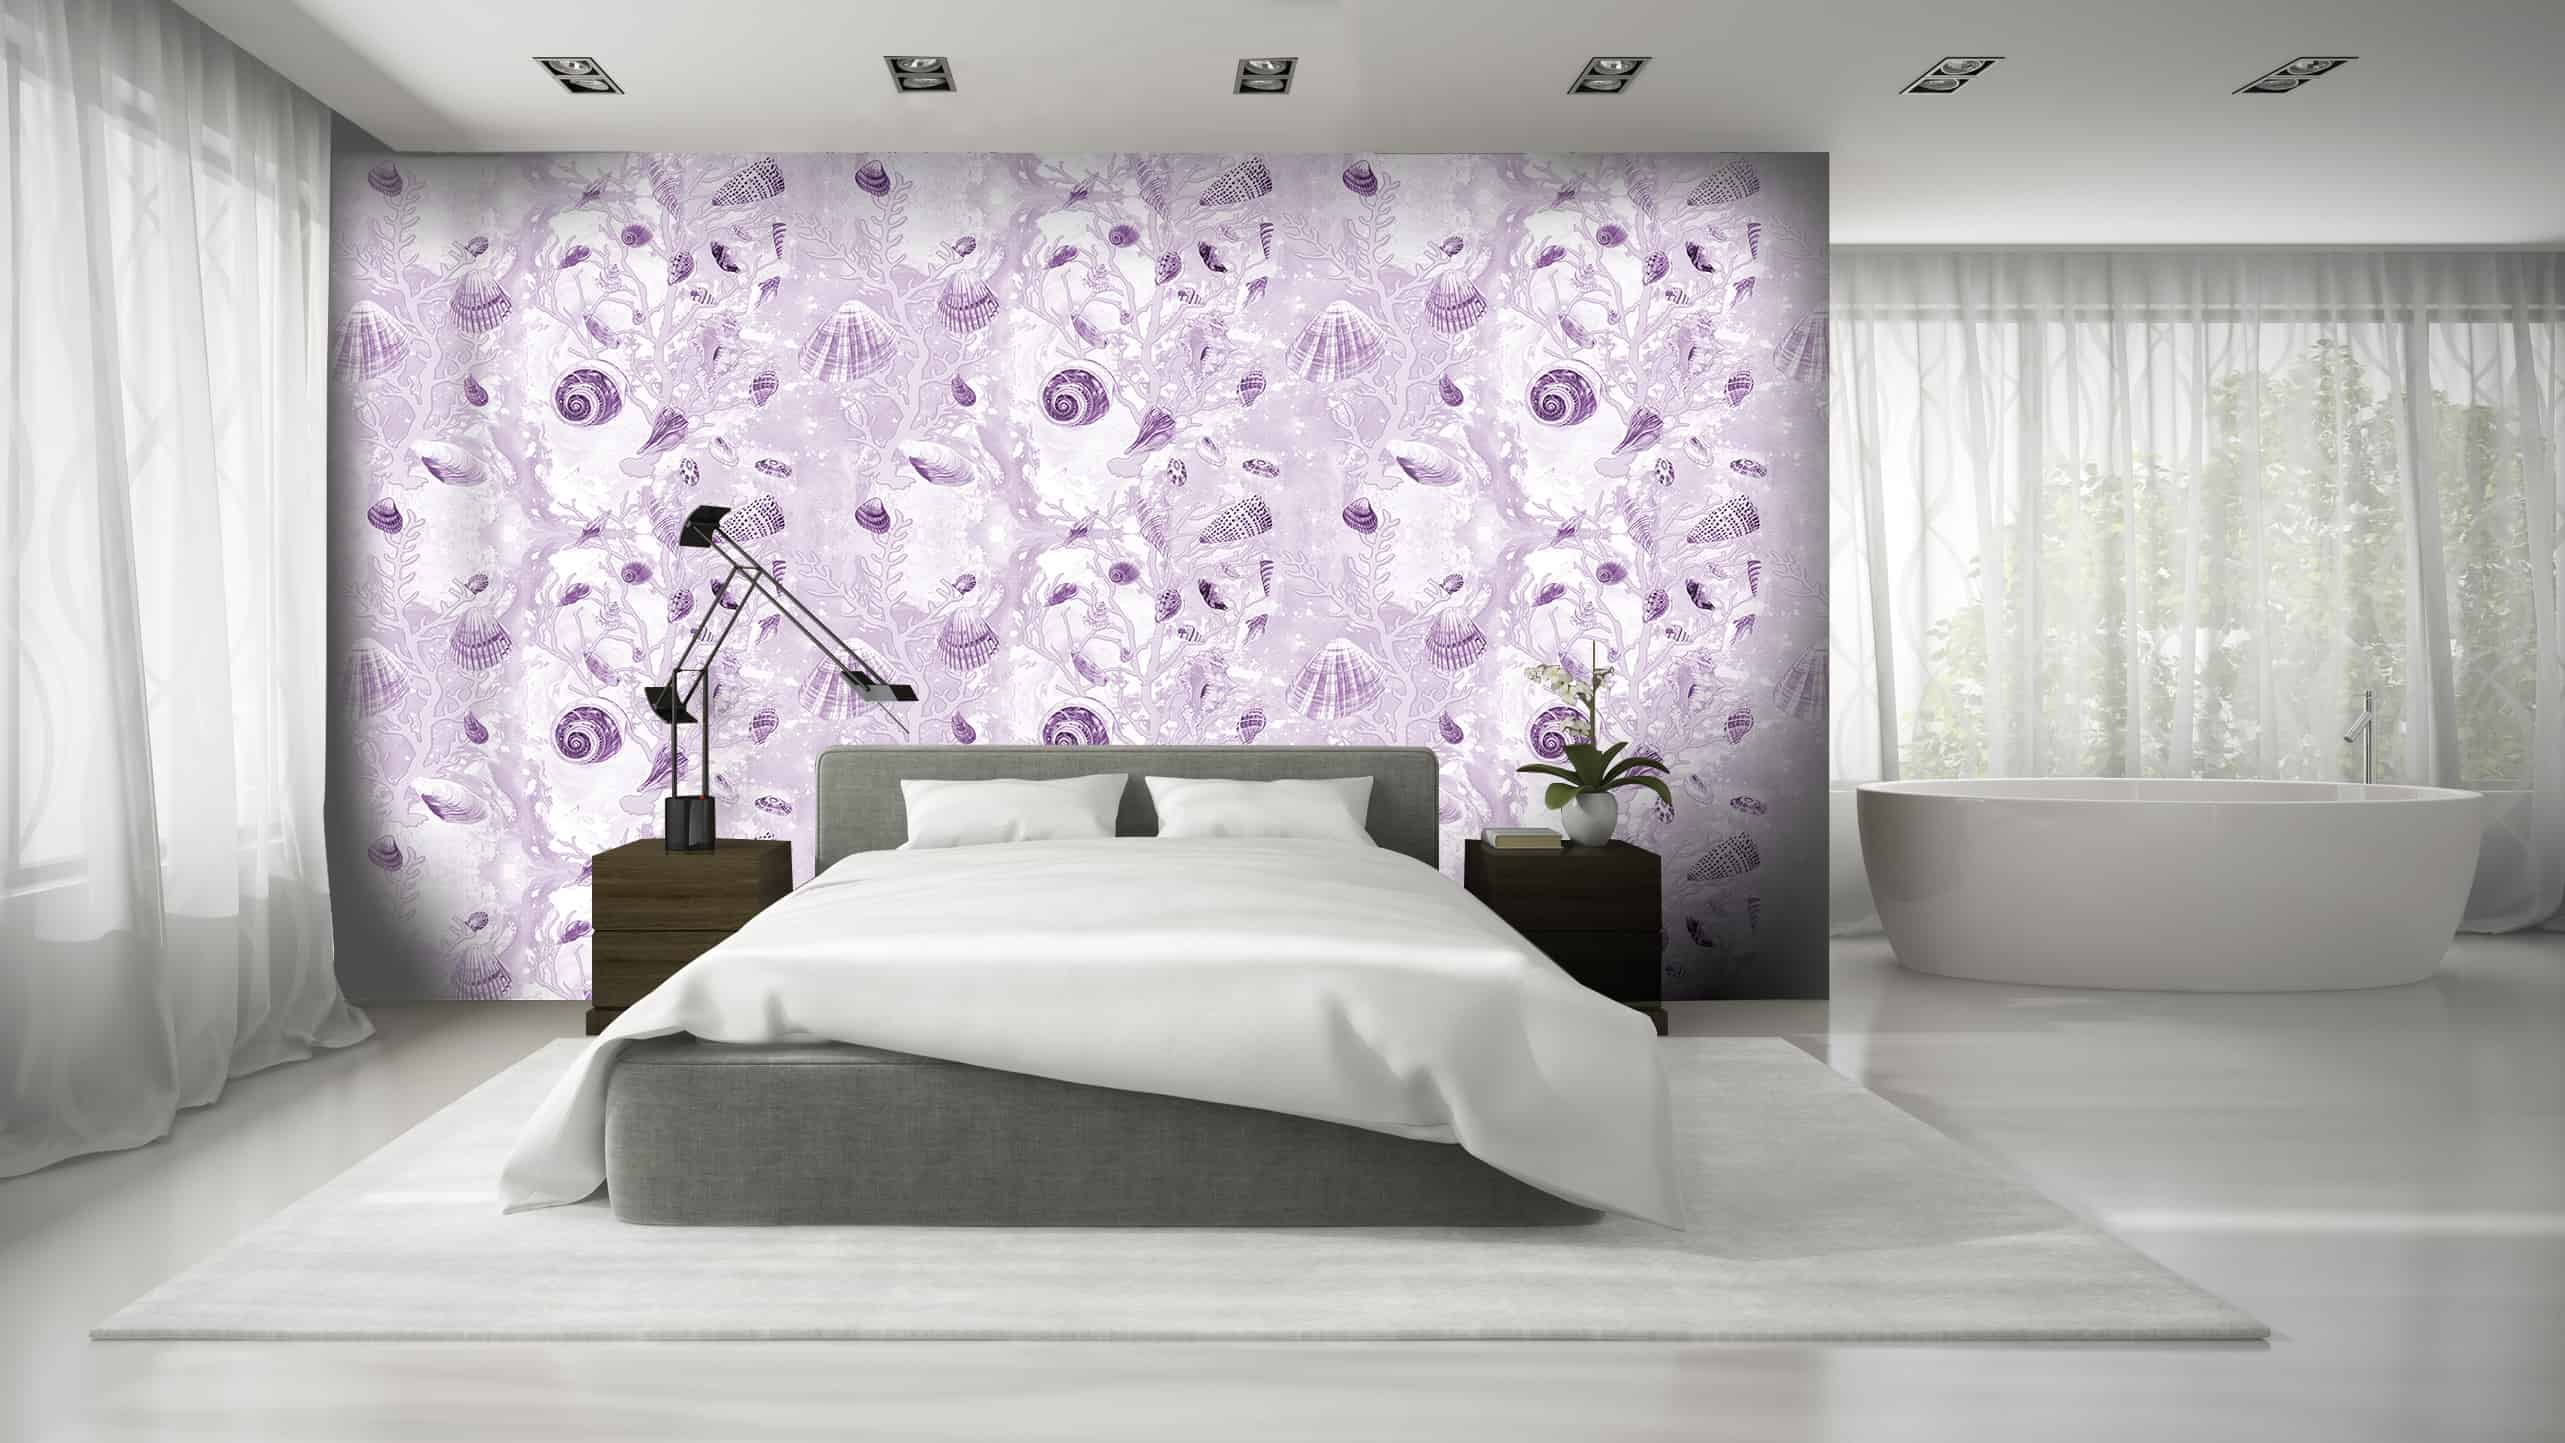 Casart Coverings Mauve Shells removable wallpaper in white bedroom